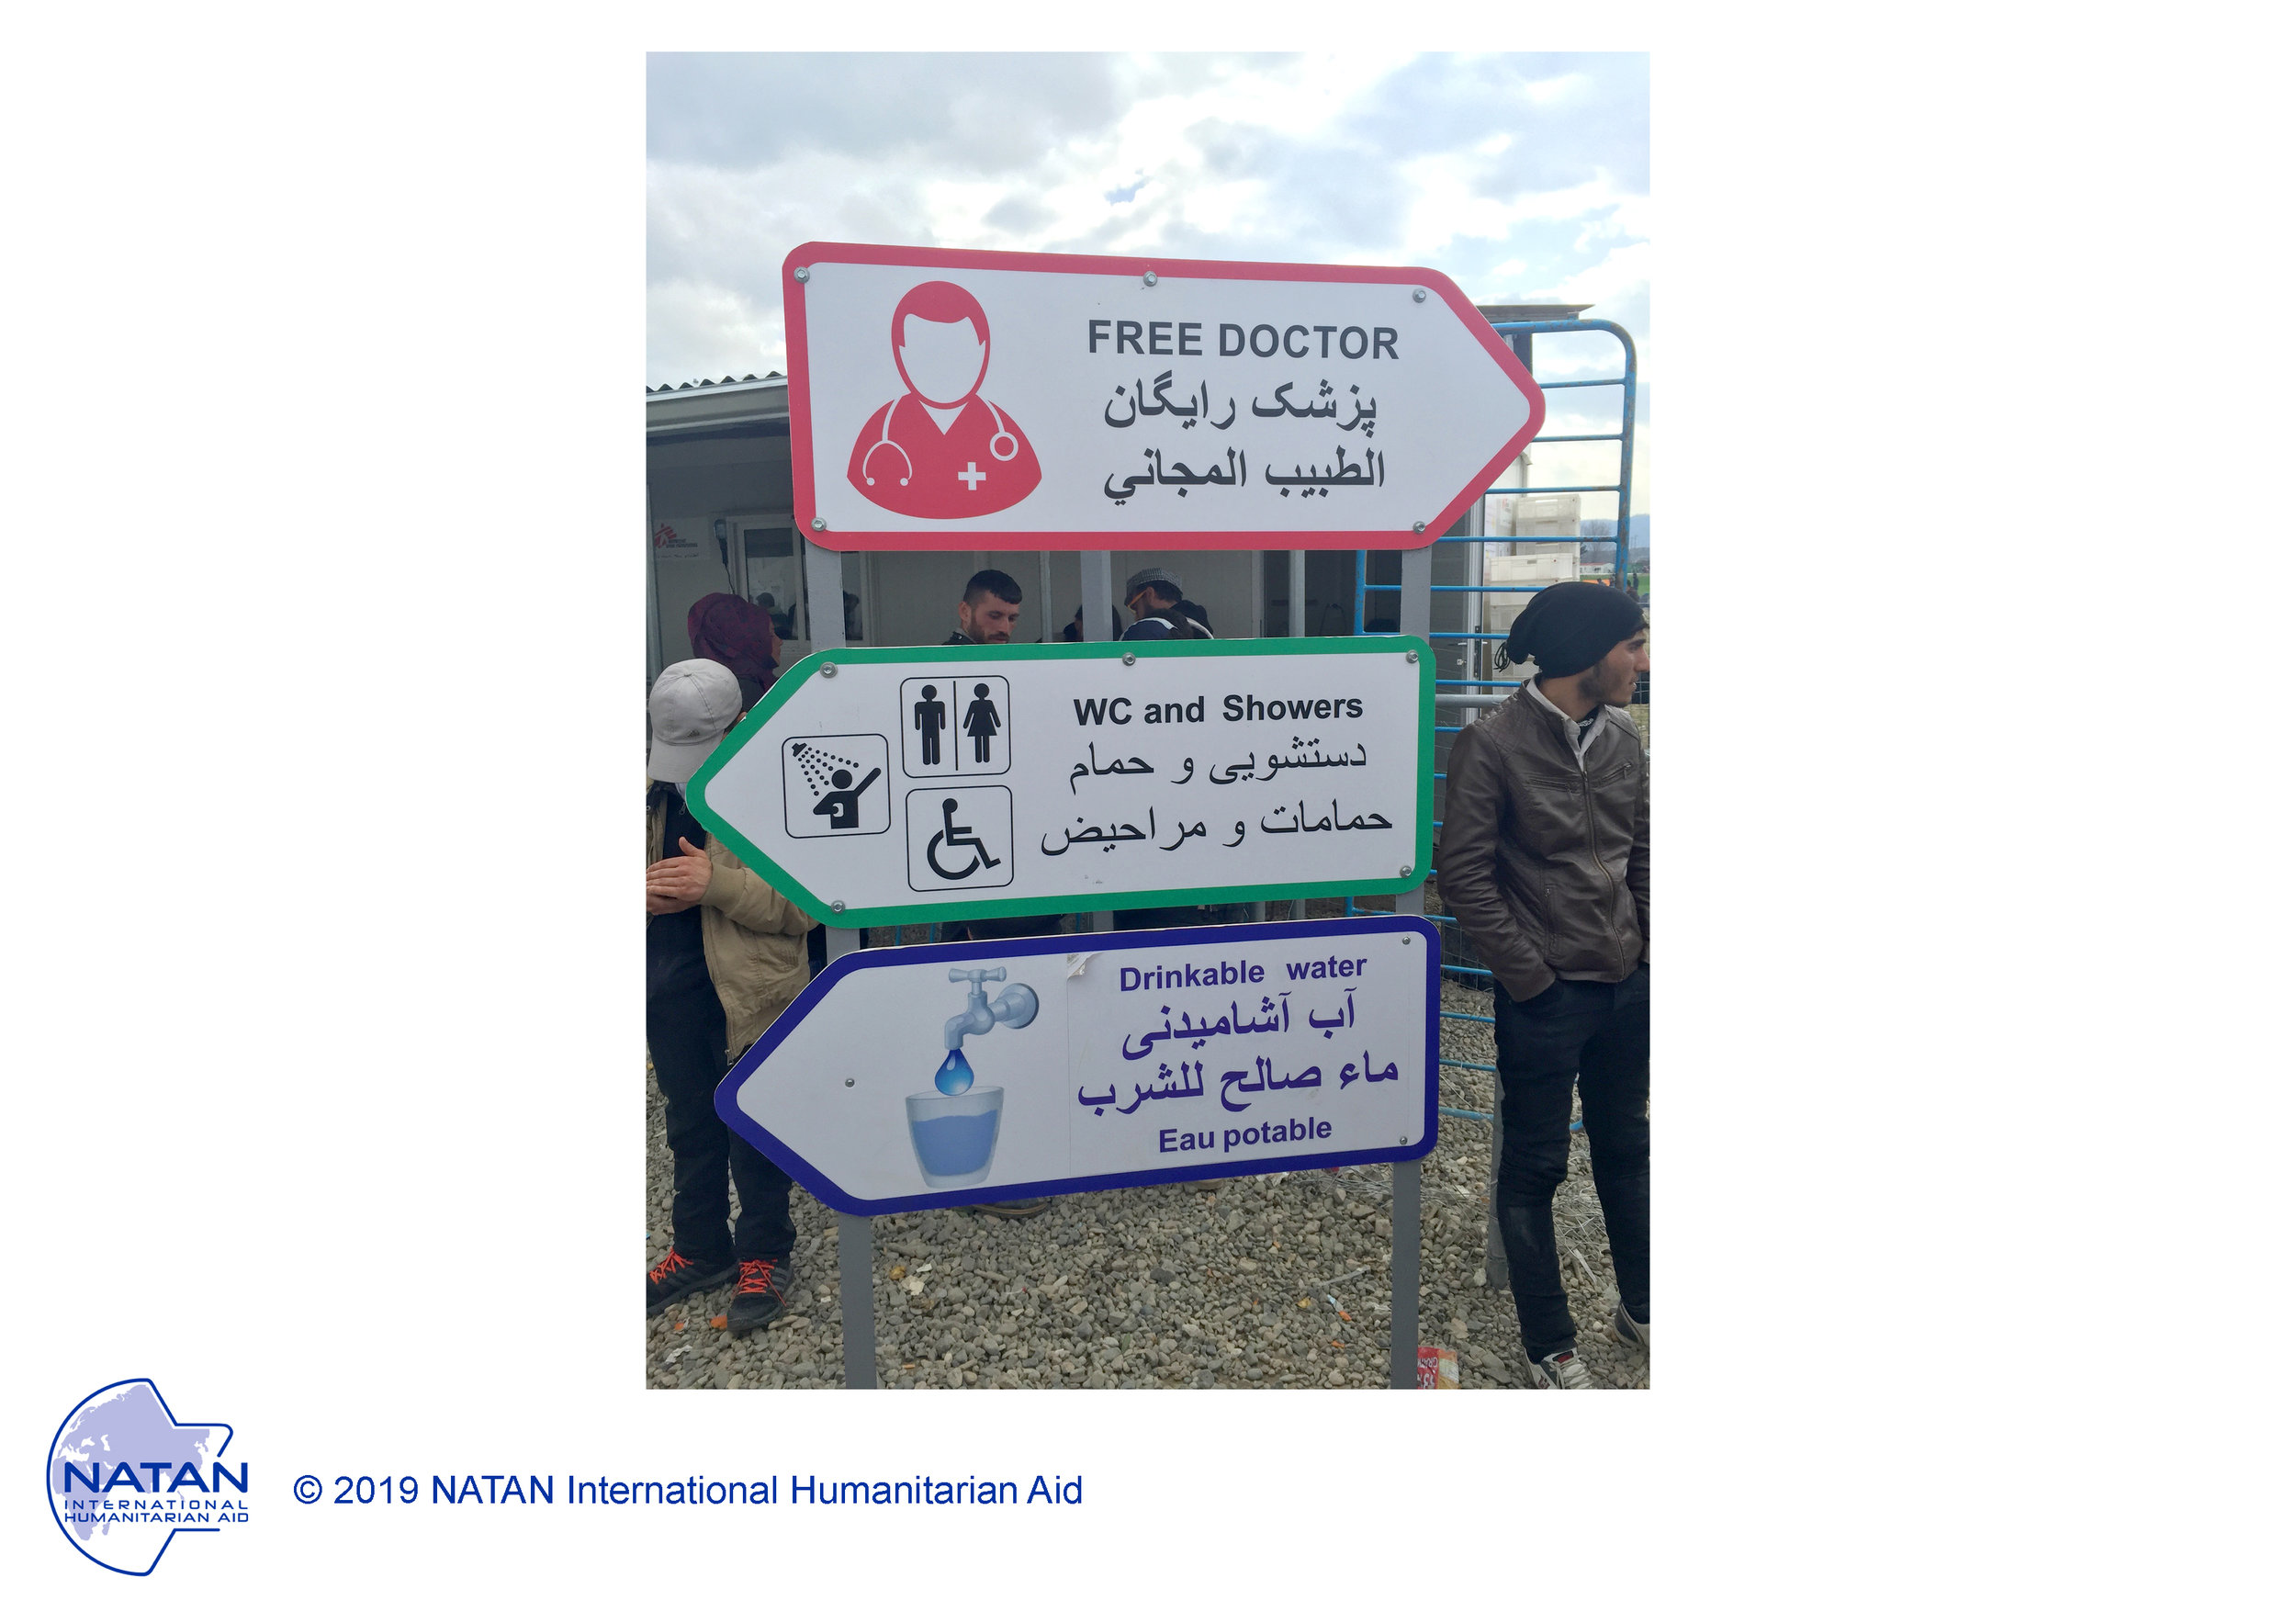 SERBIA 2016 - signs pointing to natan CLINIC which served 5,000 REFUGEES AT PRESEVO TRANSIT CAMP, NEAR THE MACEDONIAN BORDER